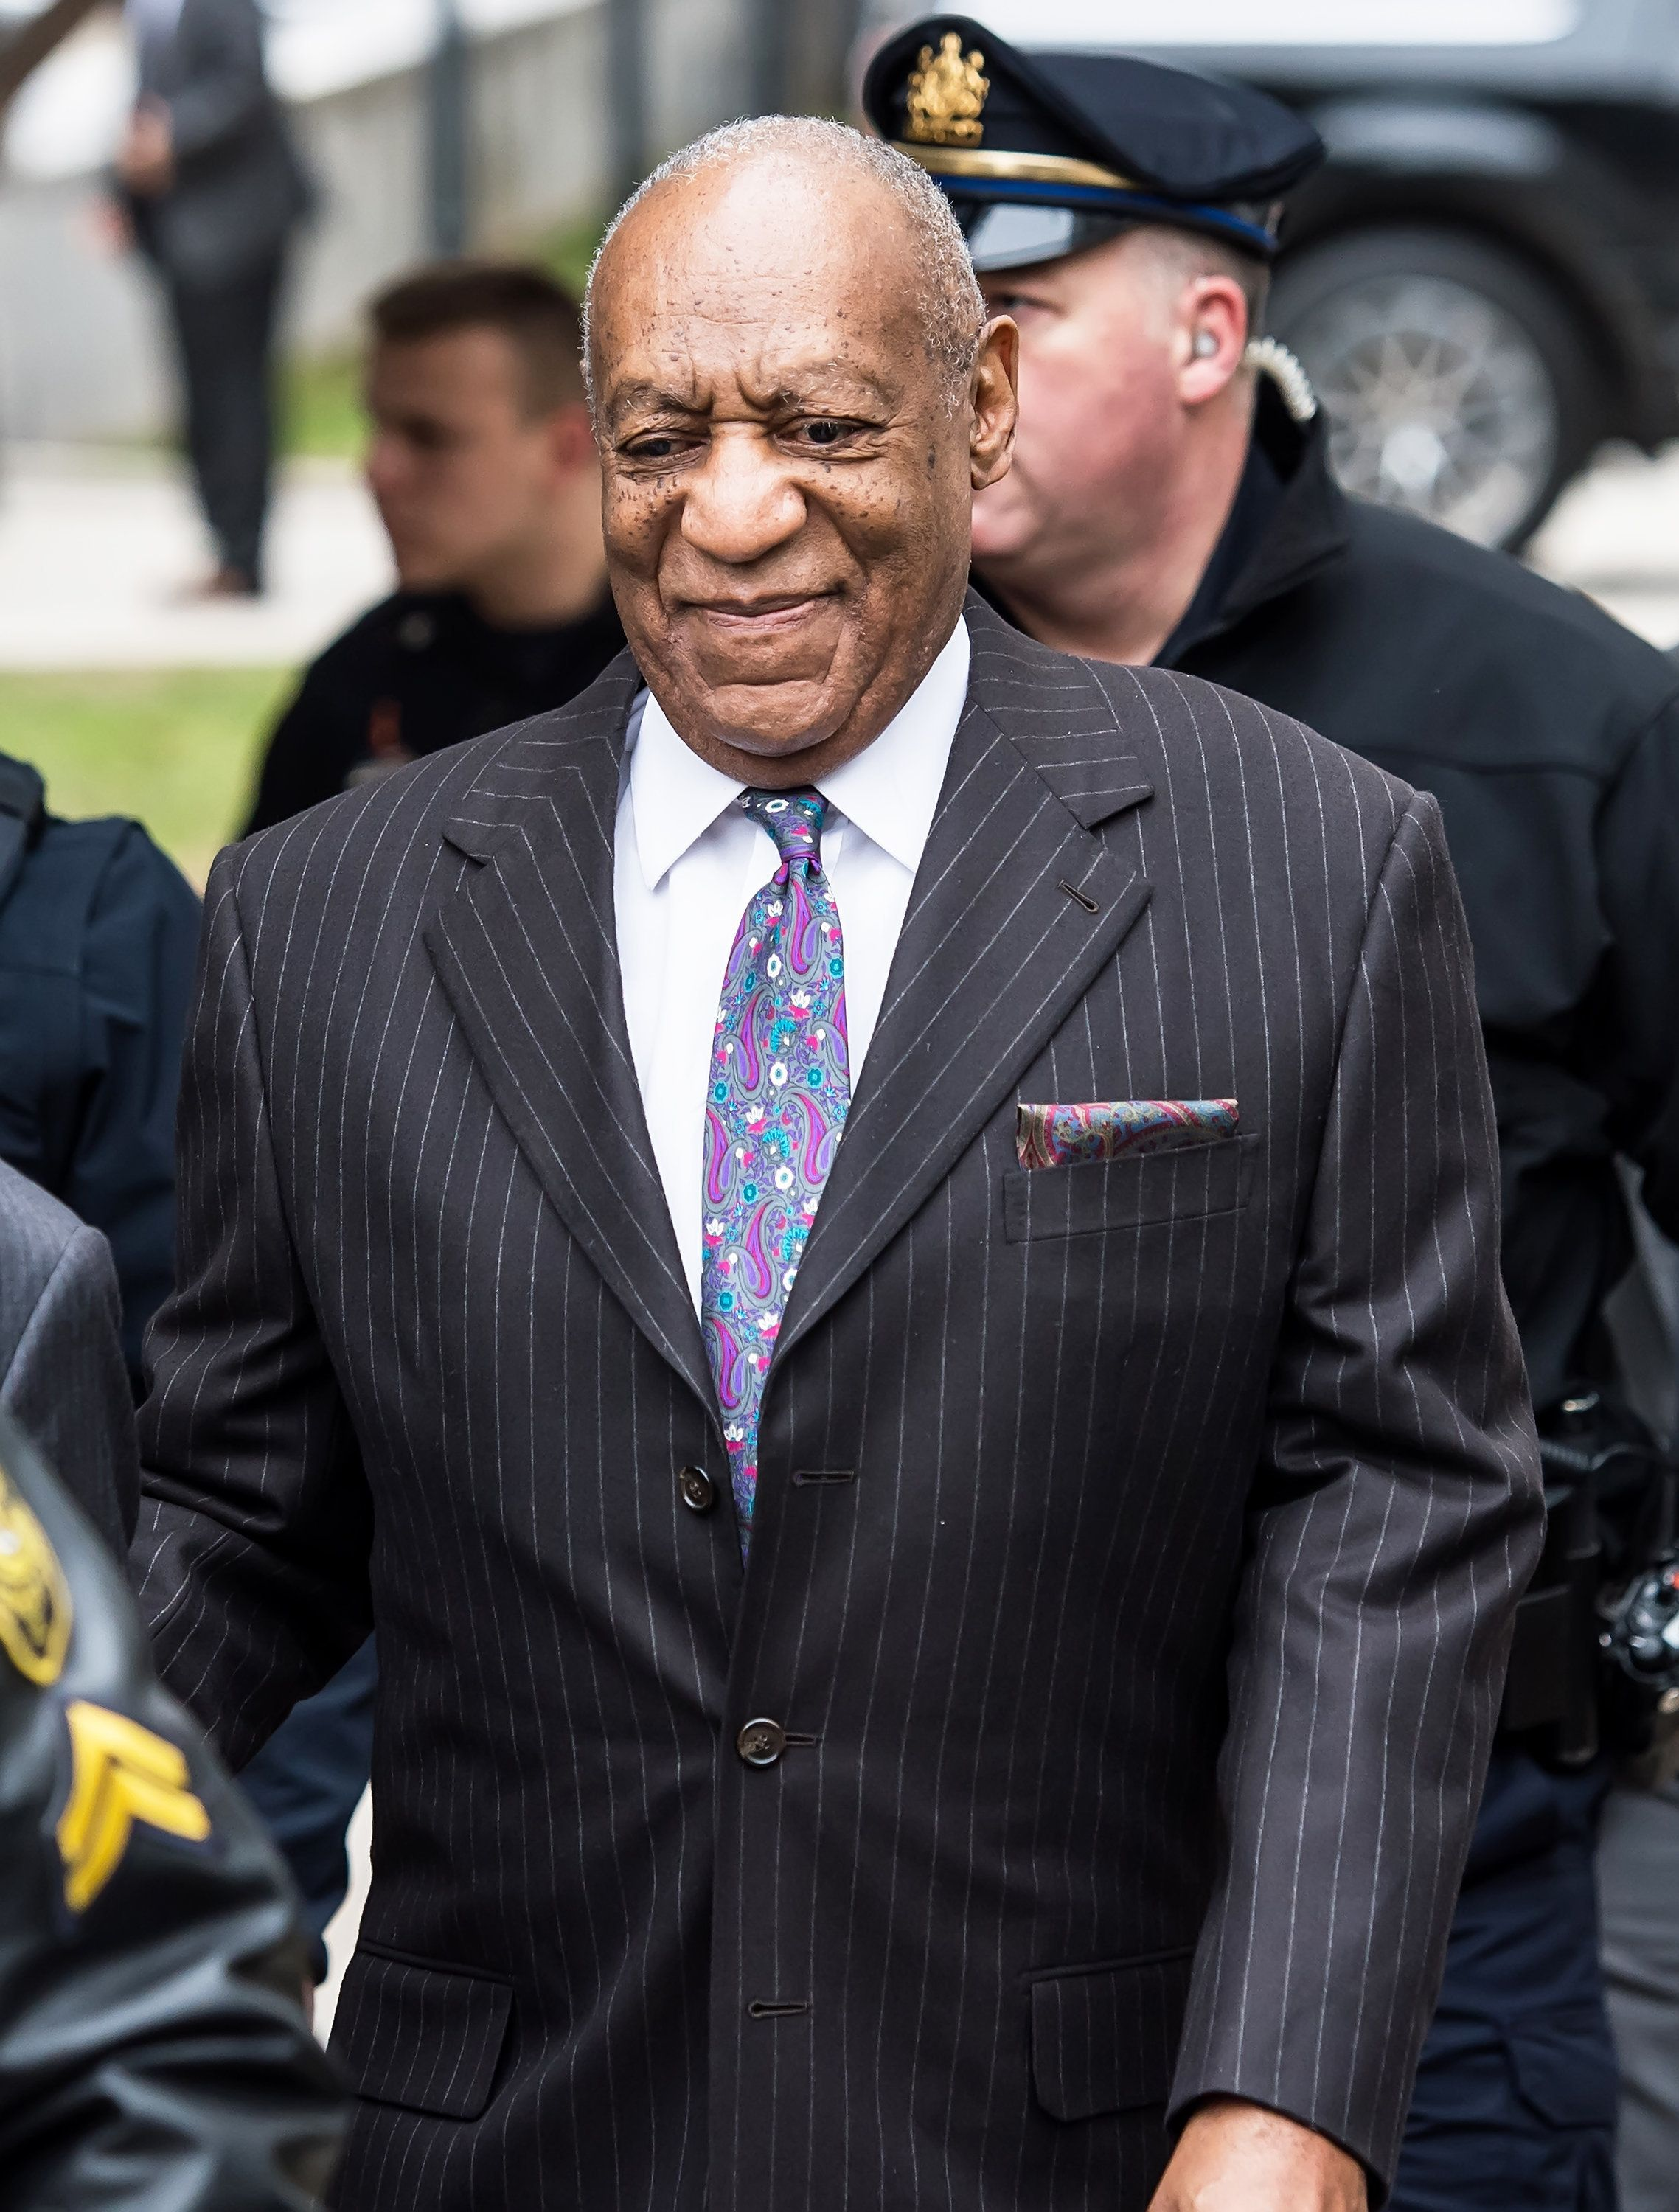 NORRISTOWN, PA - APRIL 09:  Actor/ stand-up comedian Bill Cosby arrives for first day of his Retrial For Sexual Assault Charges on April 9, 2018 in Norristown, Pennsylvania.  (Photo by Gilbert Carrasquillo/Getty Images)